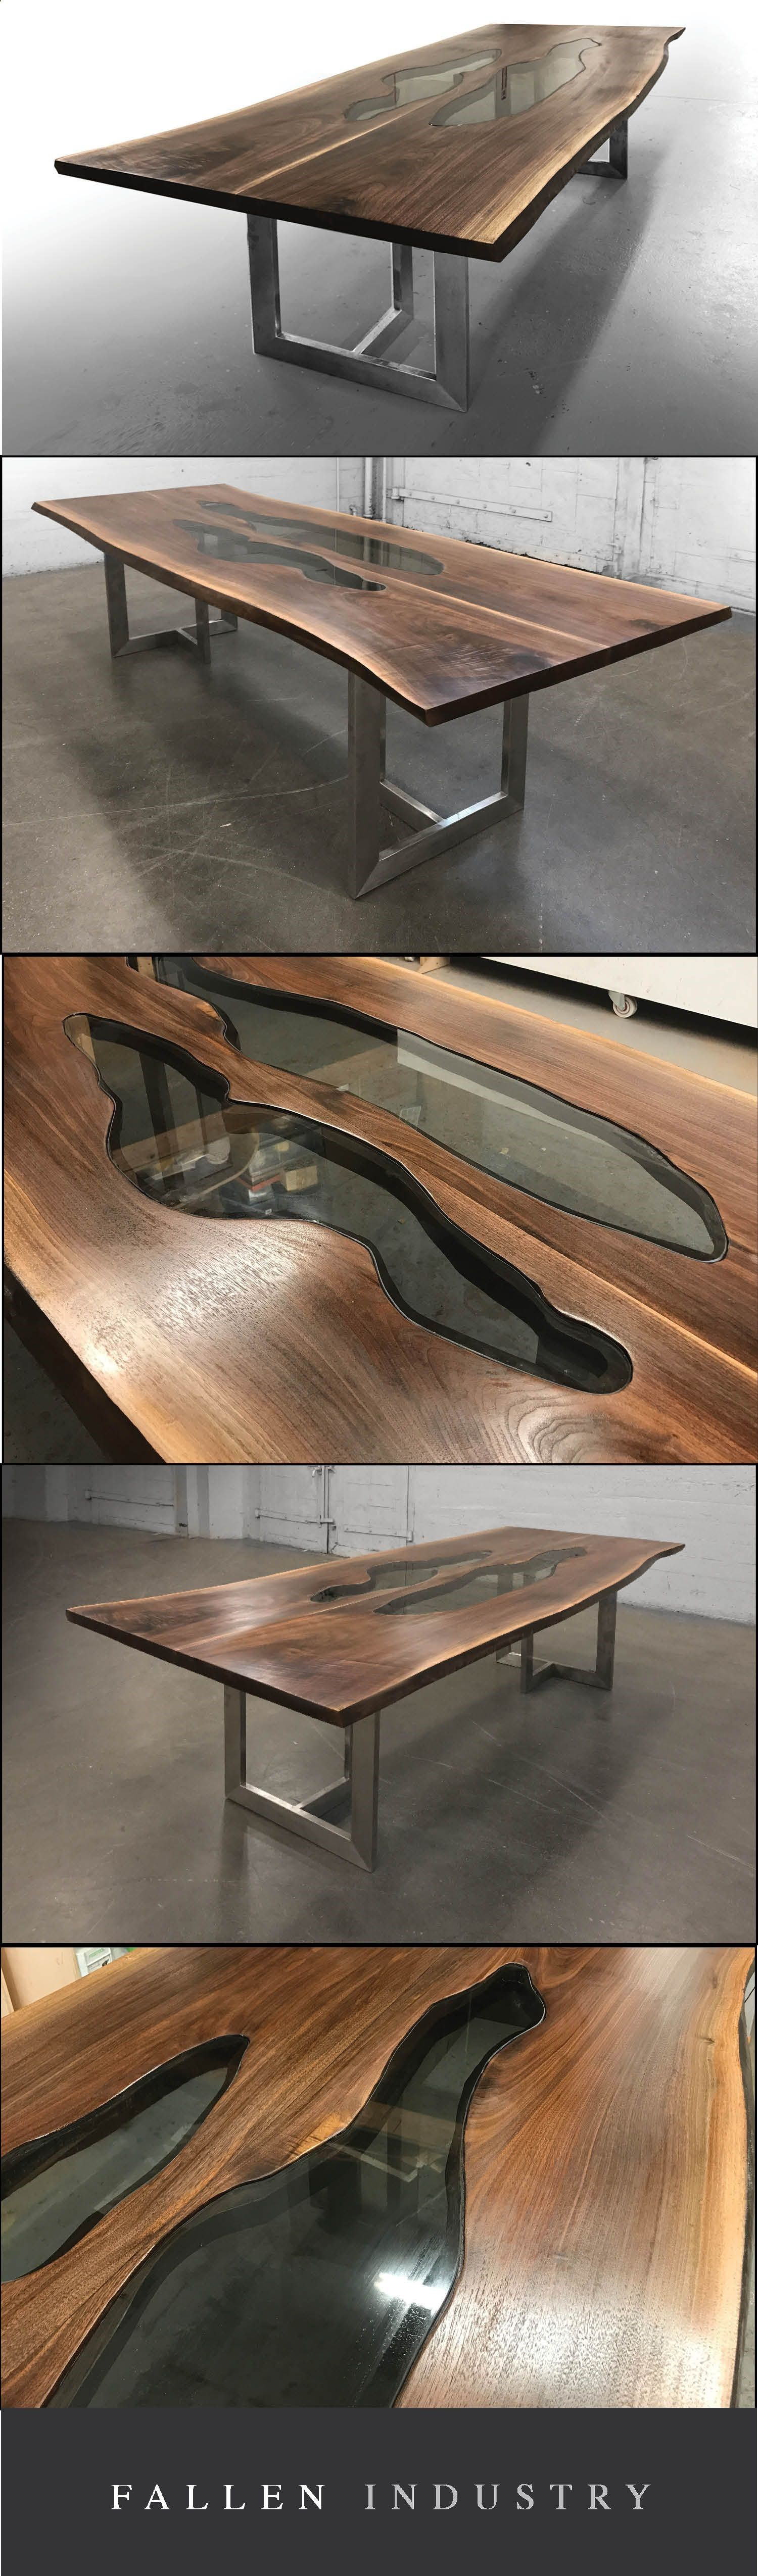 Live Edge Walnut Slab Table With Glass Inlays Shown On